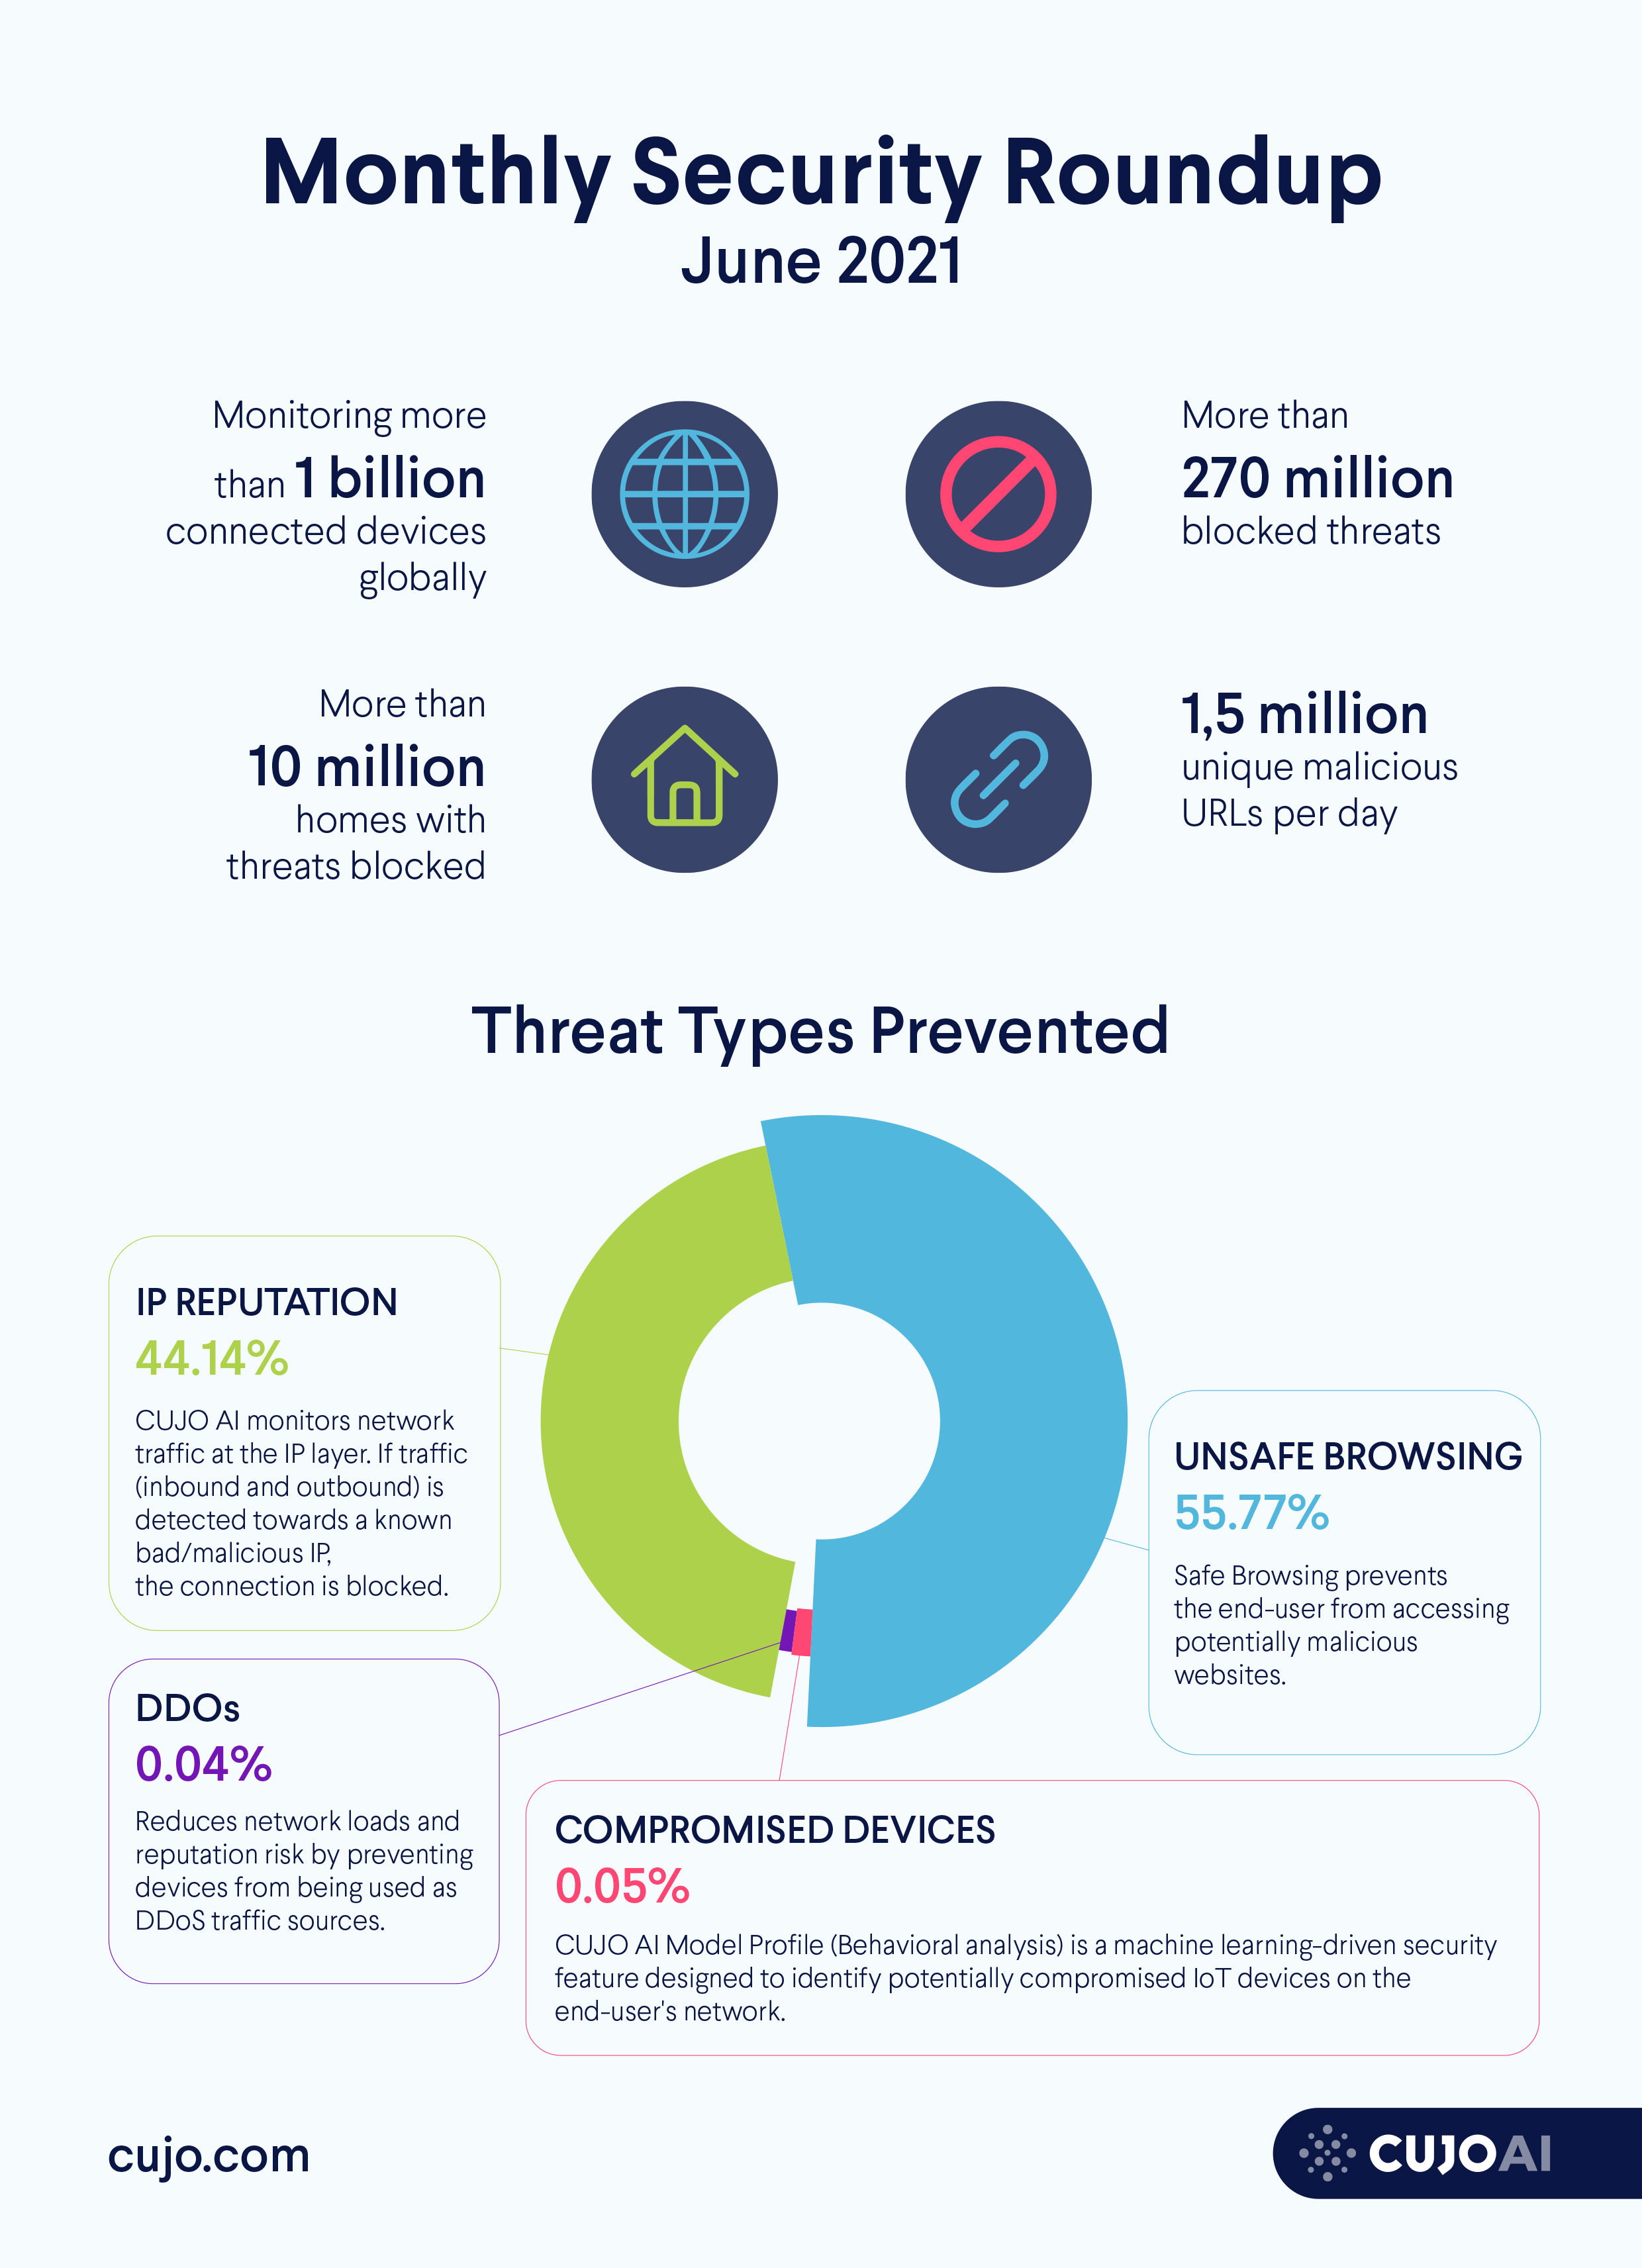 Infograph shows top cybersecurity threats in June, 2021: unsafe browsing, IP reputation, DDOS botnets, and compromised devices. Data from CUJO AI Labs